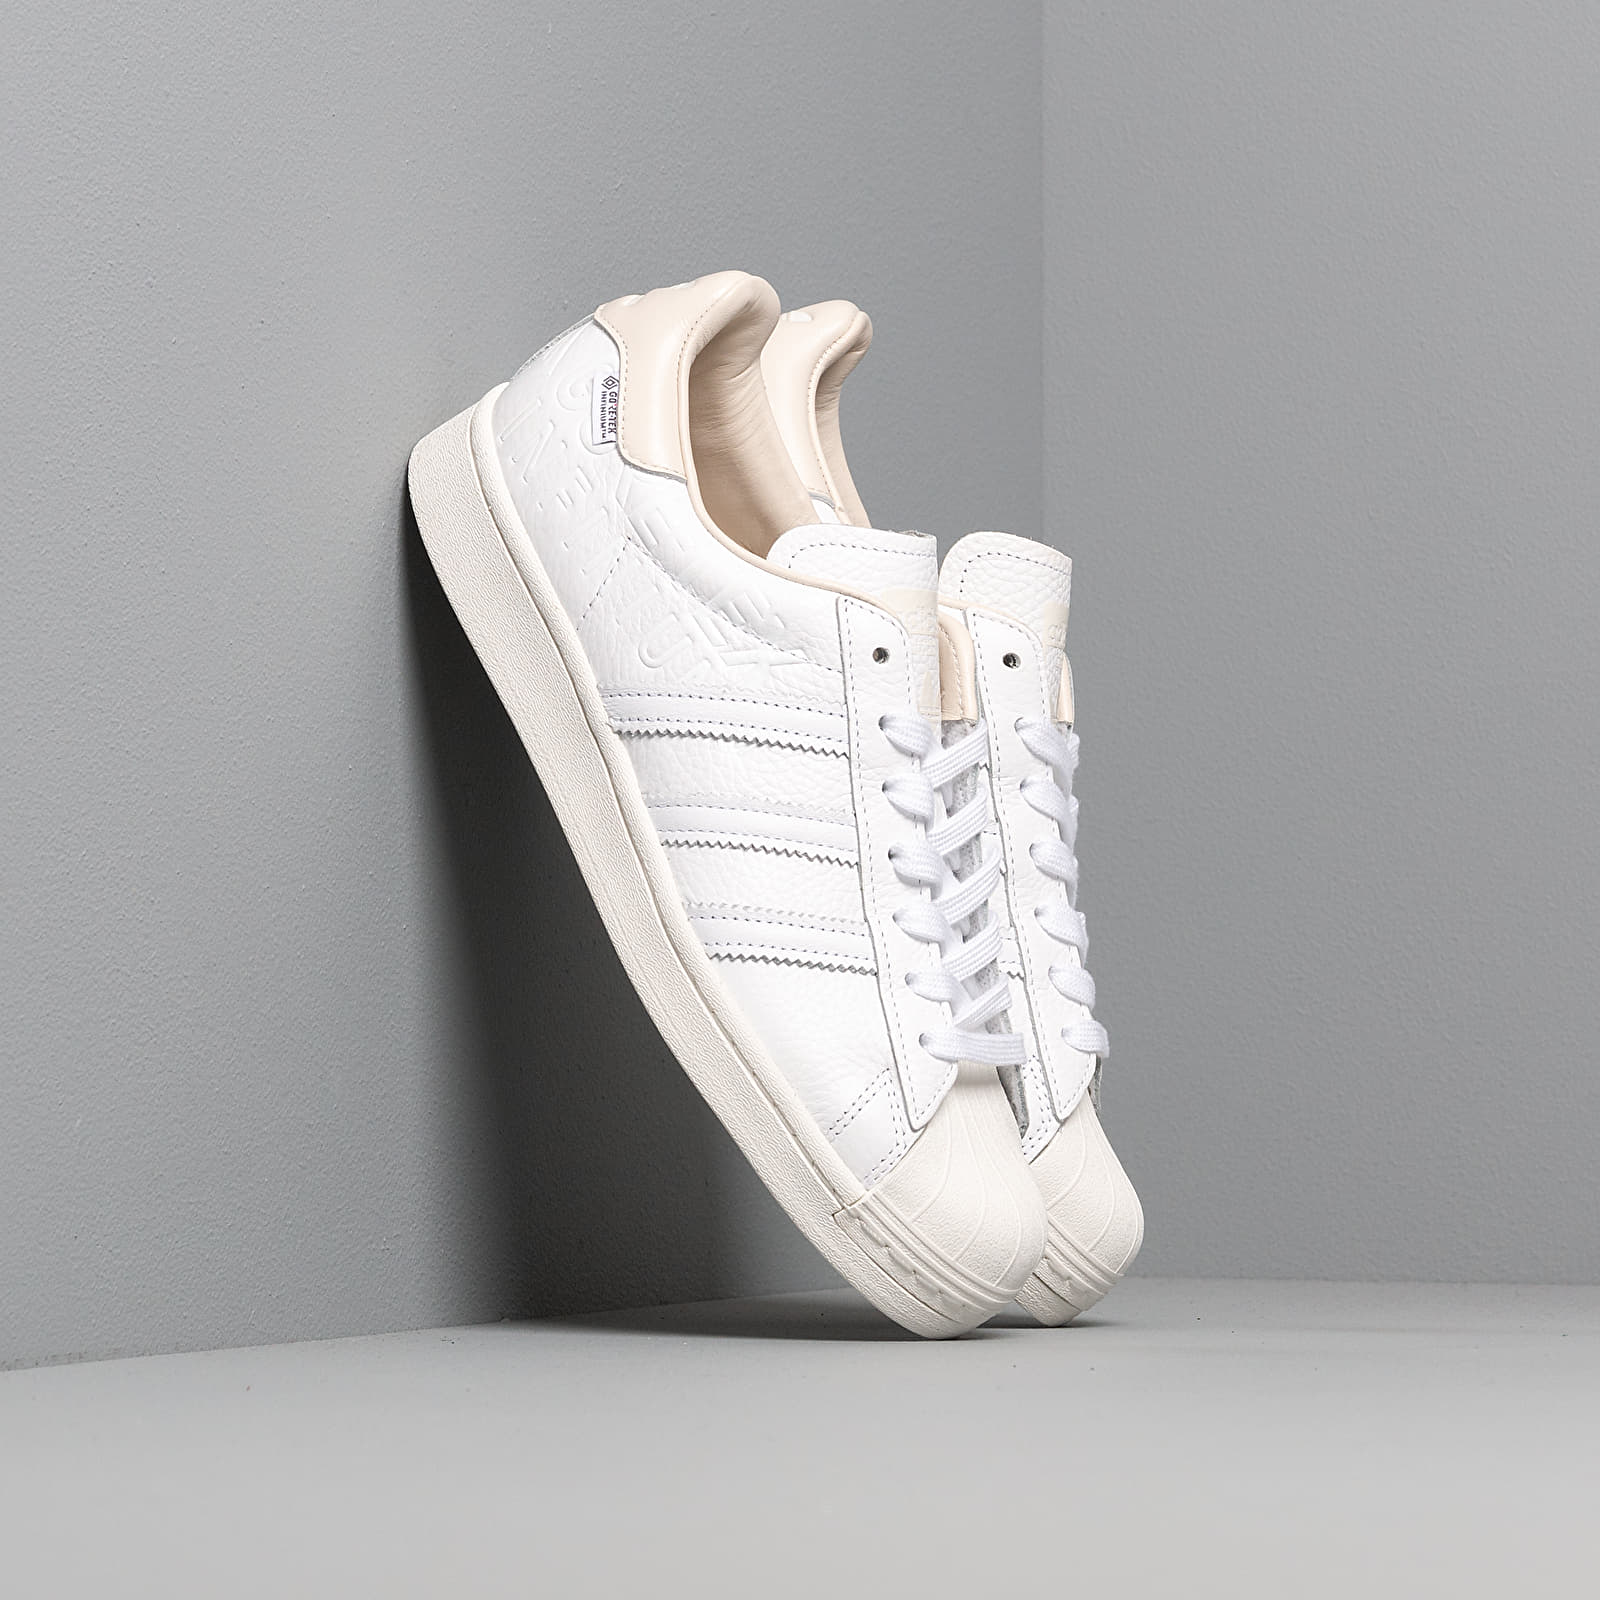 Buty męskie adidas Superstar Gore-Tex Ftw White/ Off White/ Chalk White